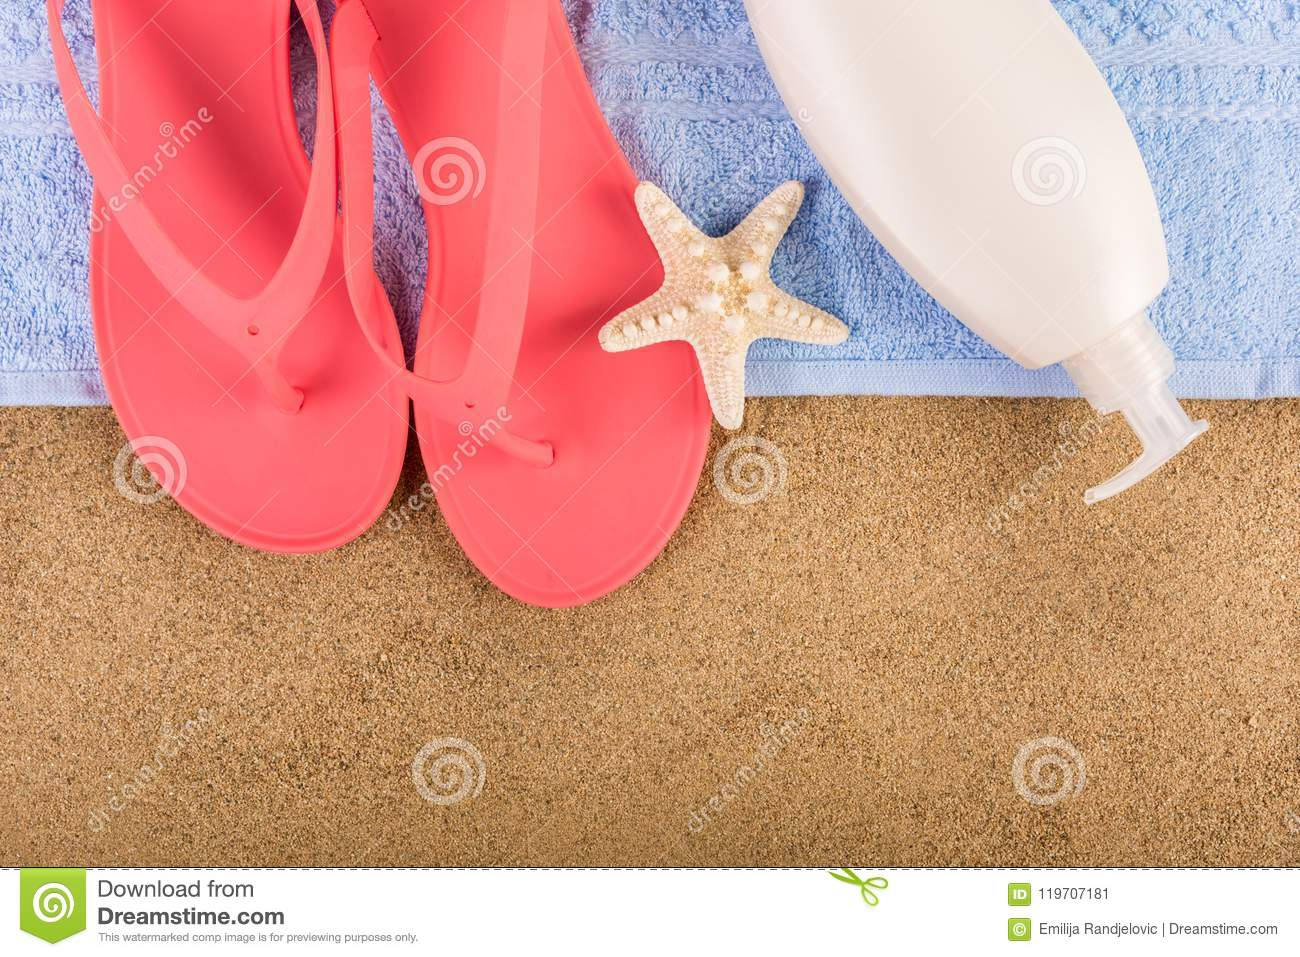 a63f28ece8d4a Beautiful female pink gently sandal flip flop on blue towel and suntan  cream lotion on sand beach and starfish. Summer vacations copy space and  concept.